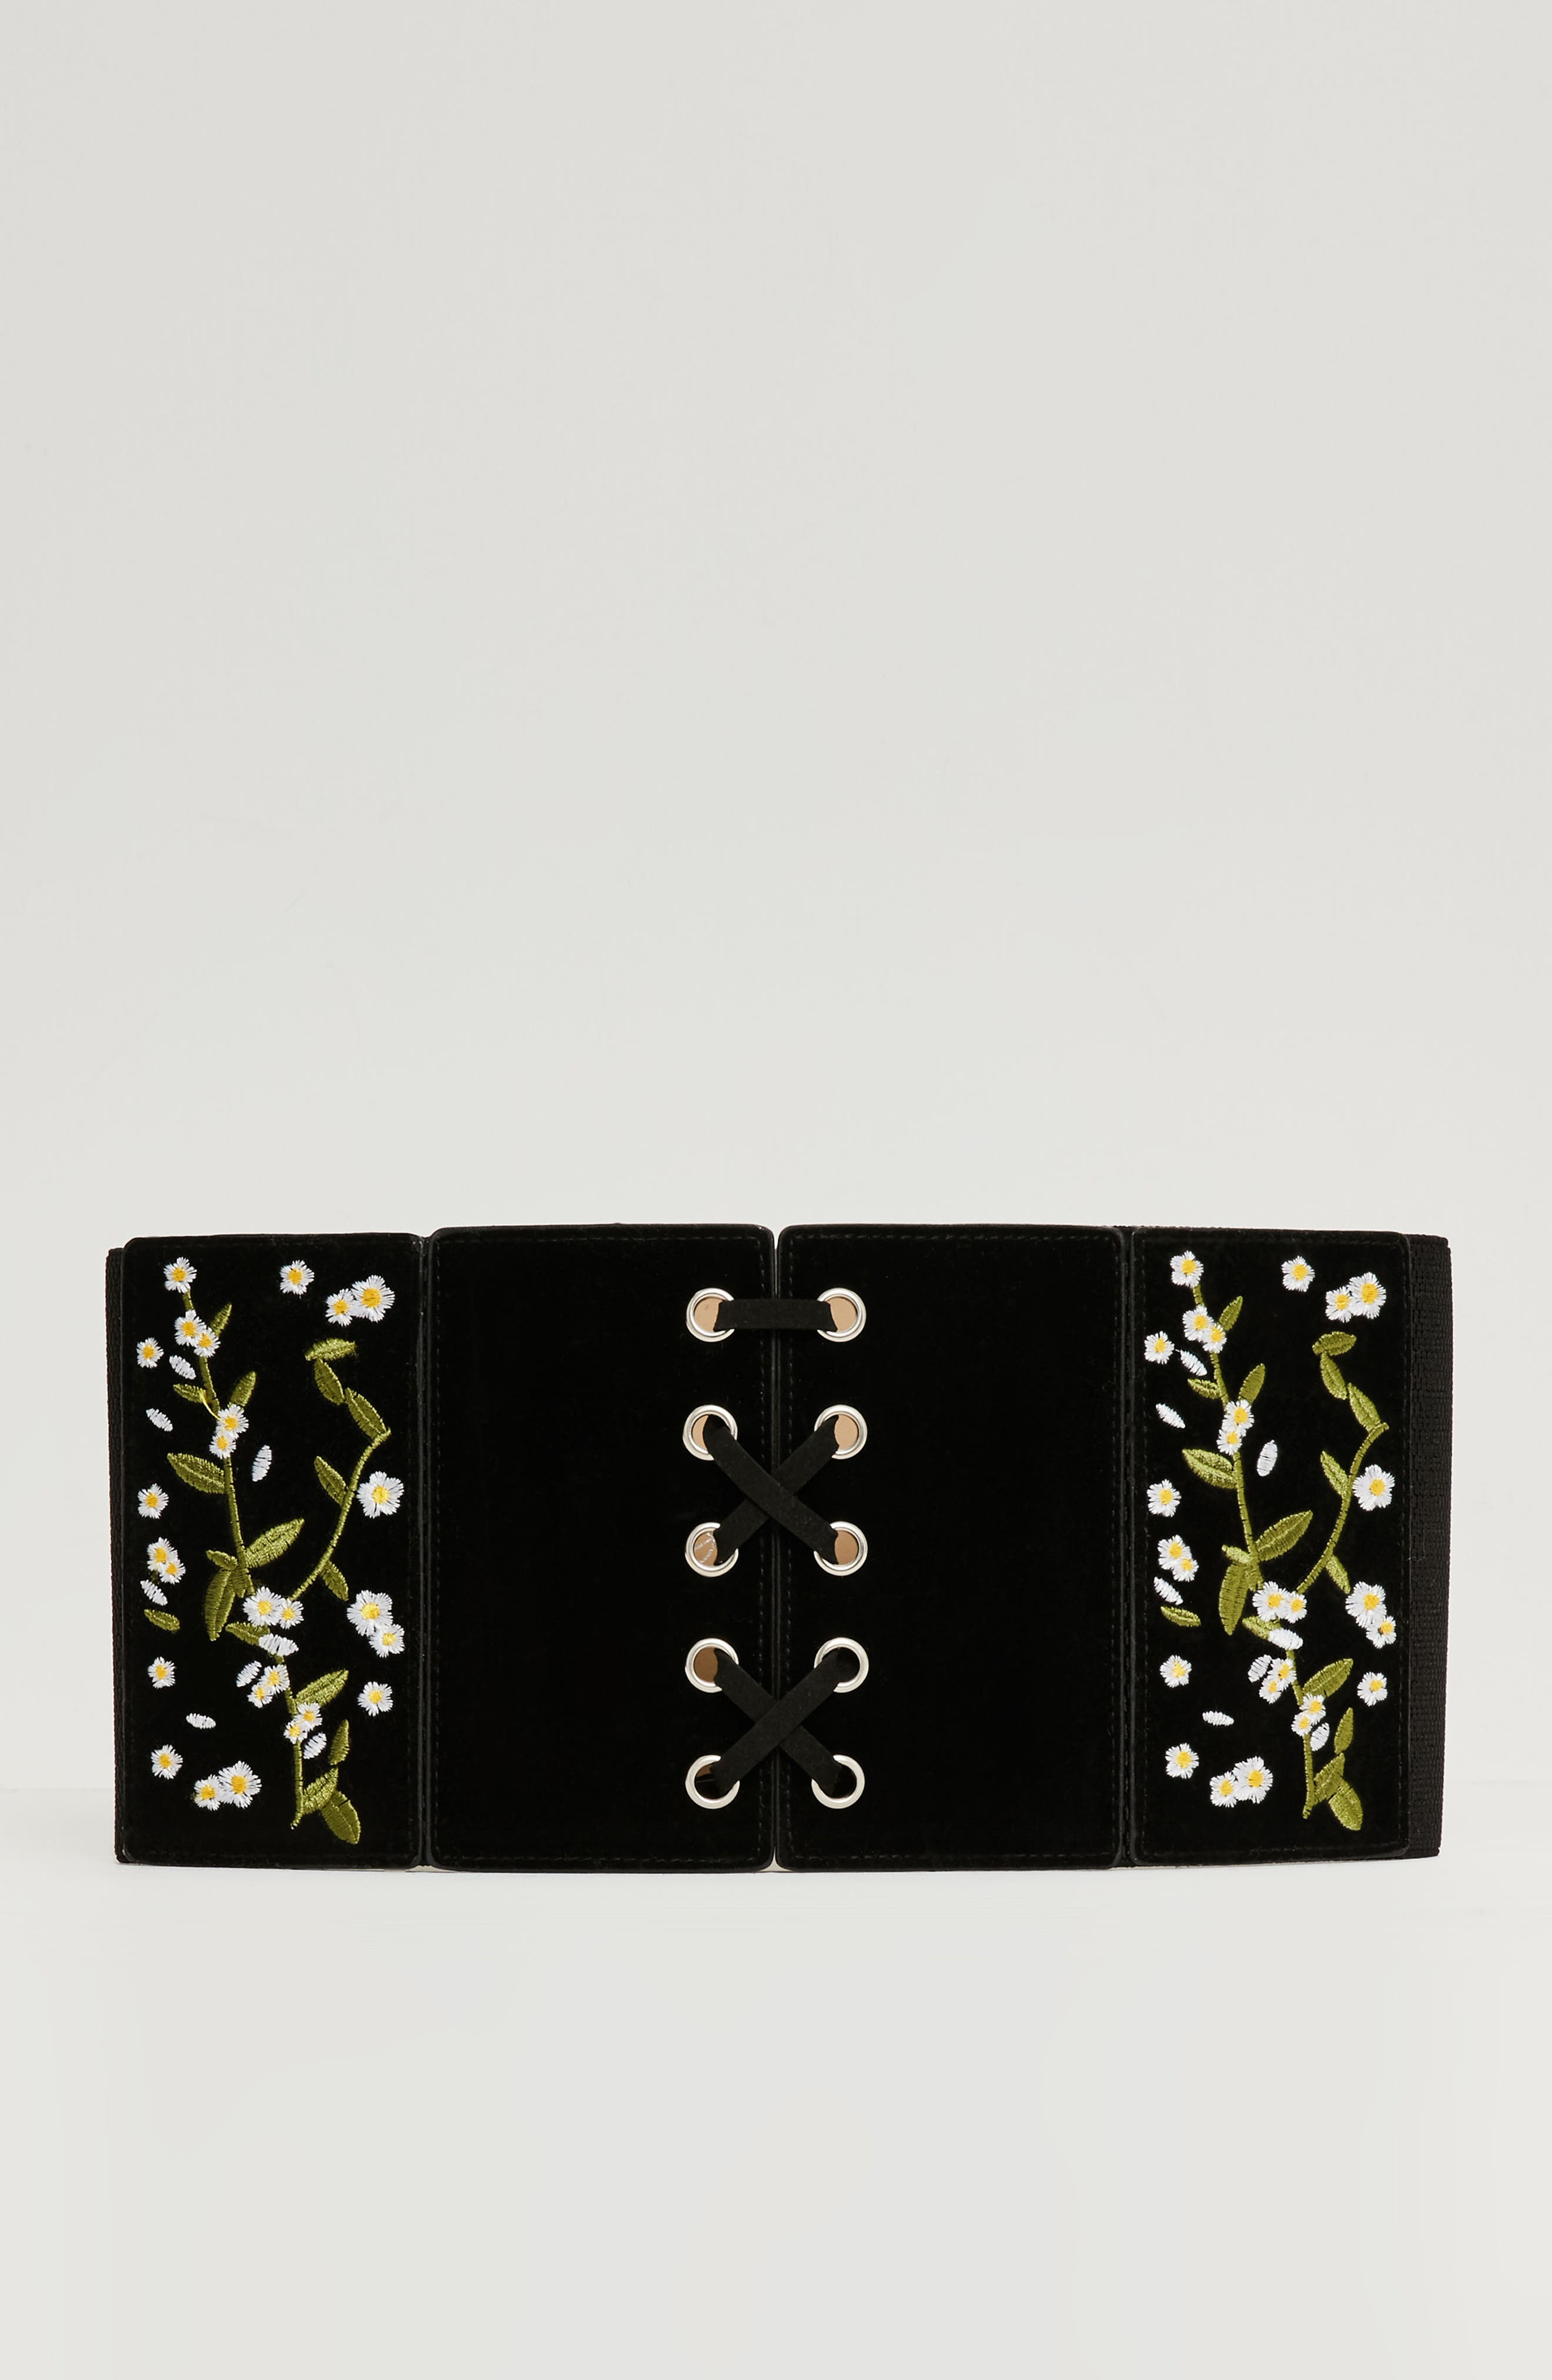 Floral Embroidered Faux Leather Lace-Up Belt,                             Alternate thumbnail 3, color,                             001